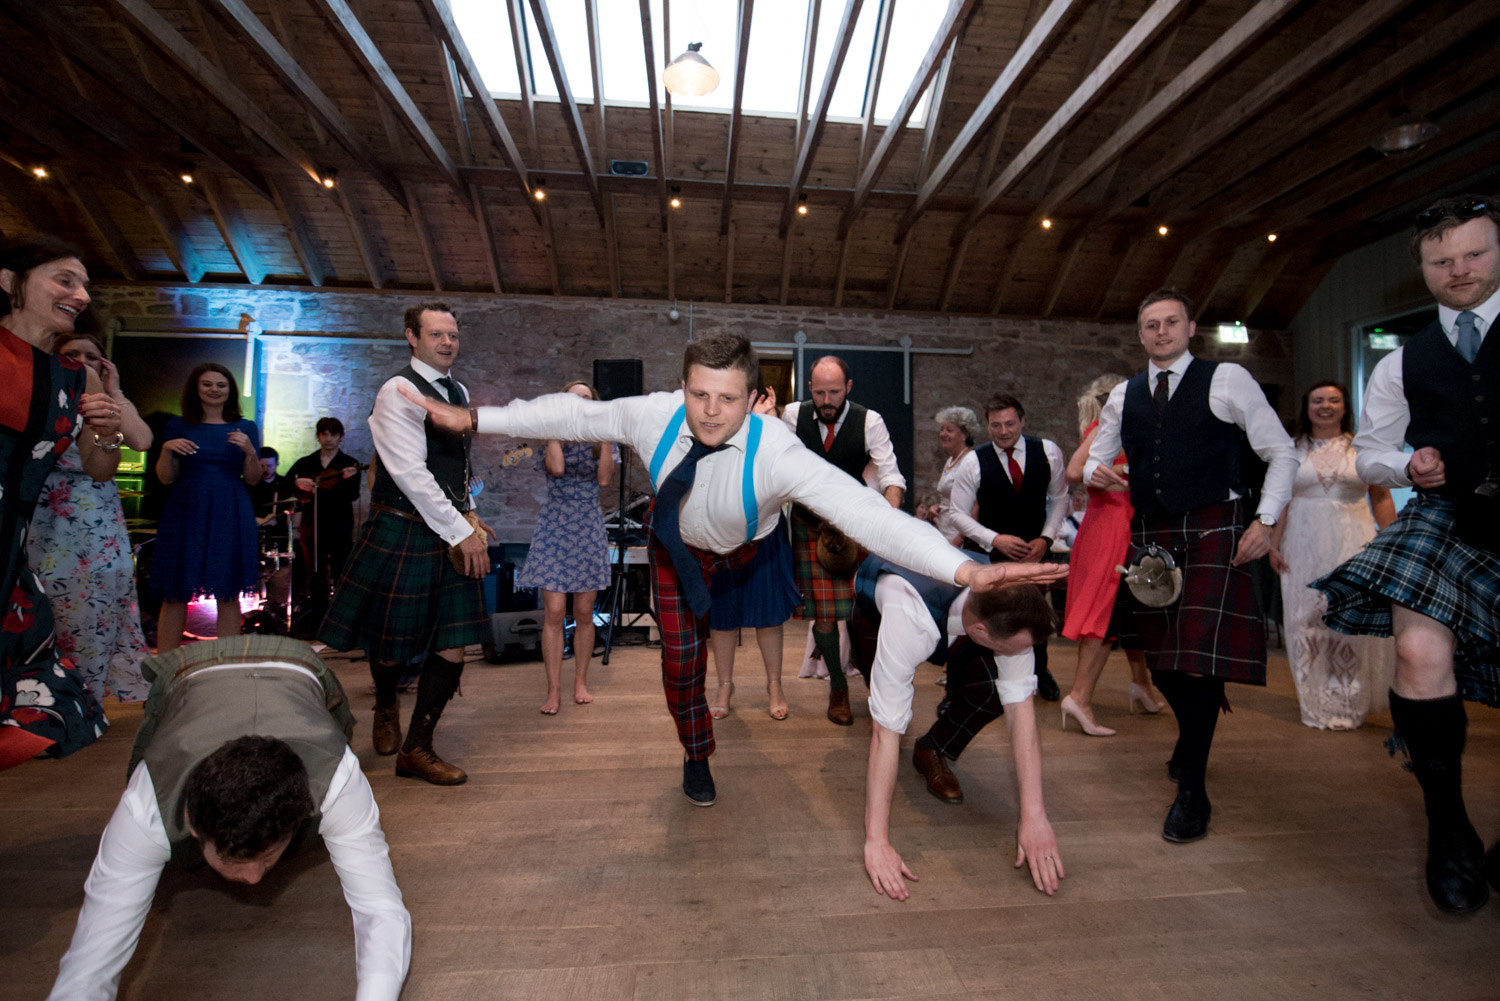 Guardswell Farm - ceilidh in the Cattle Court 07